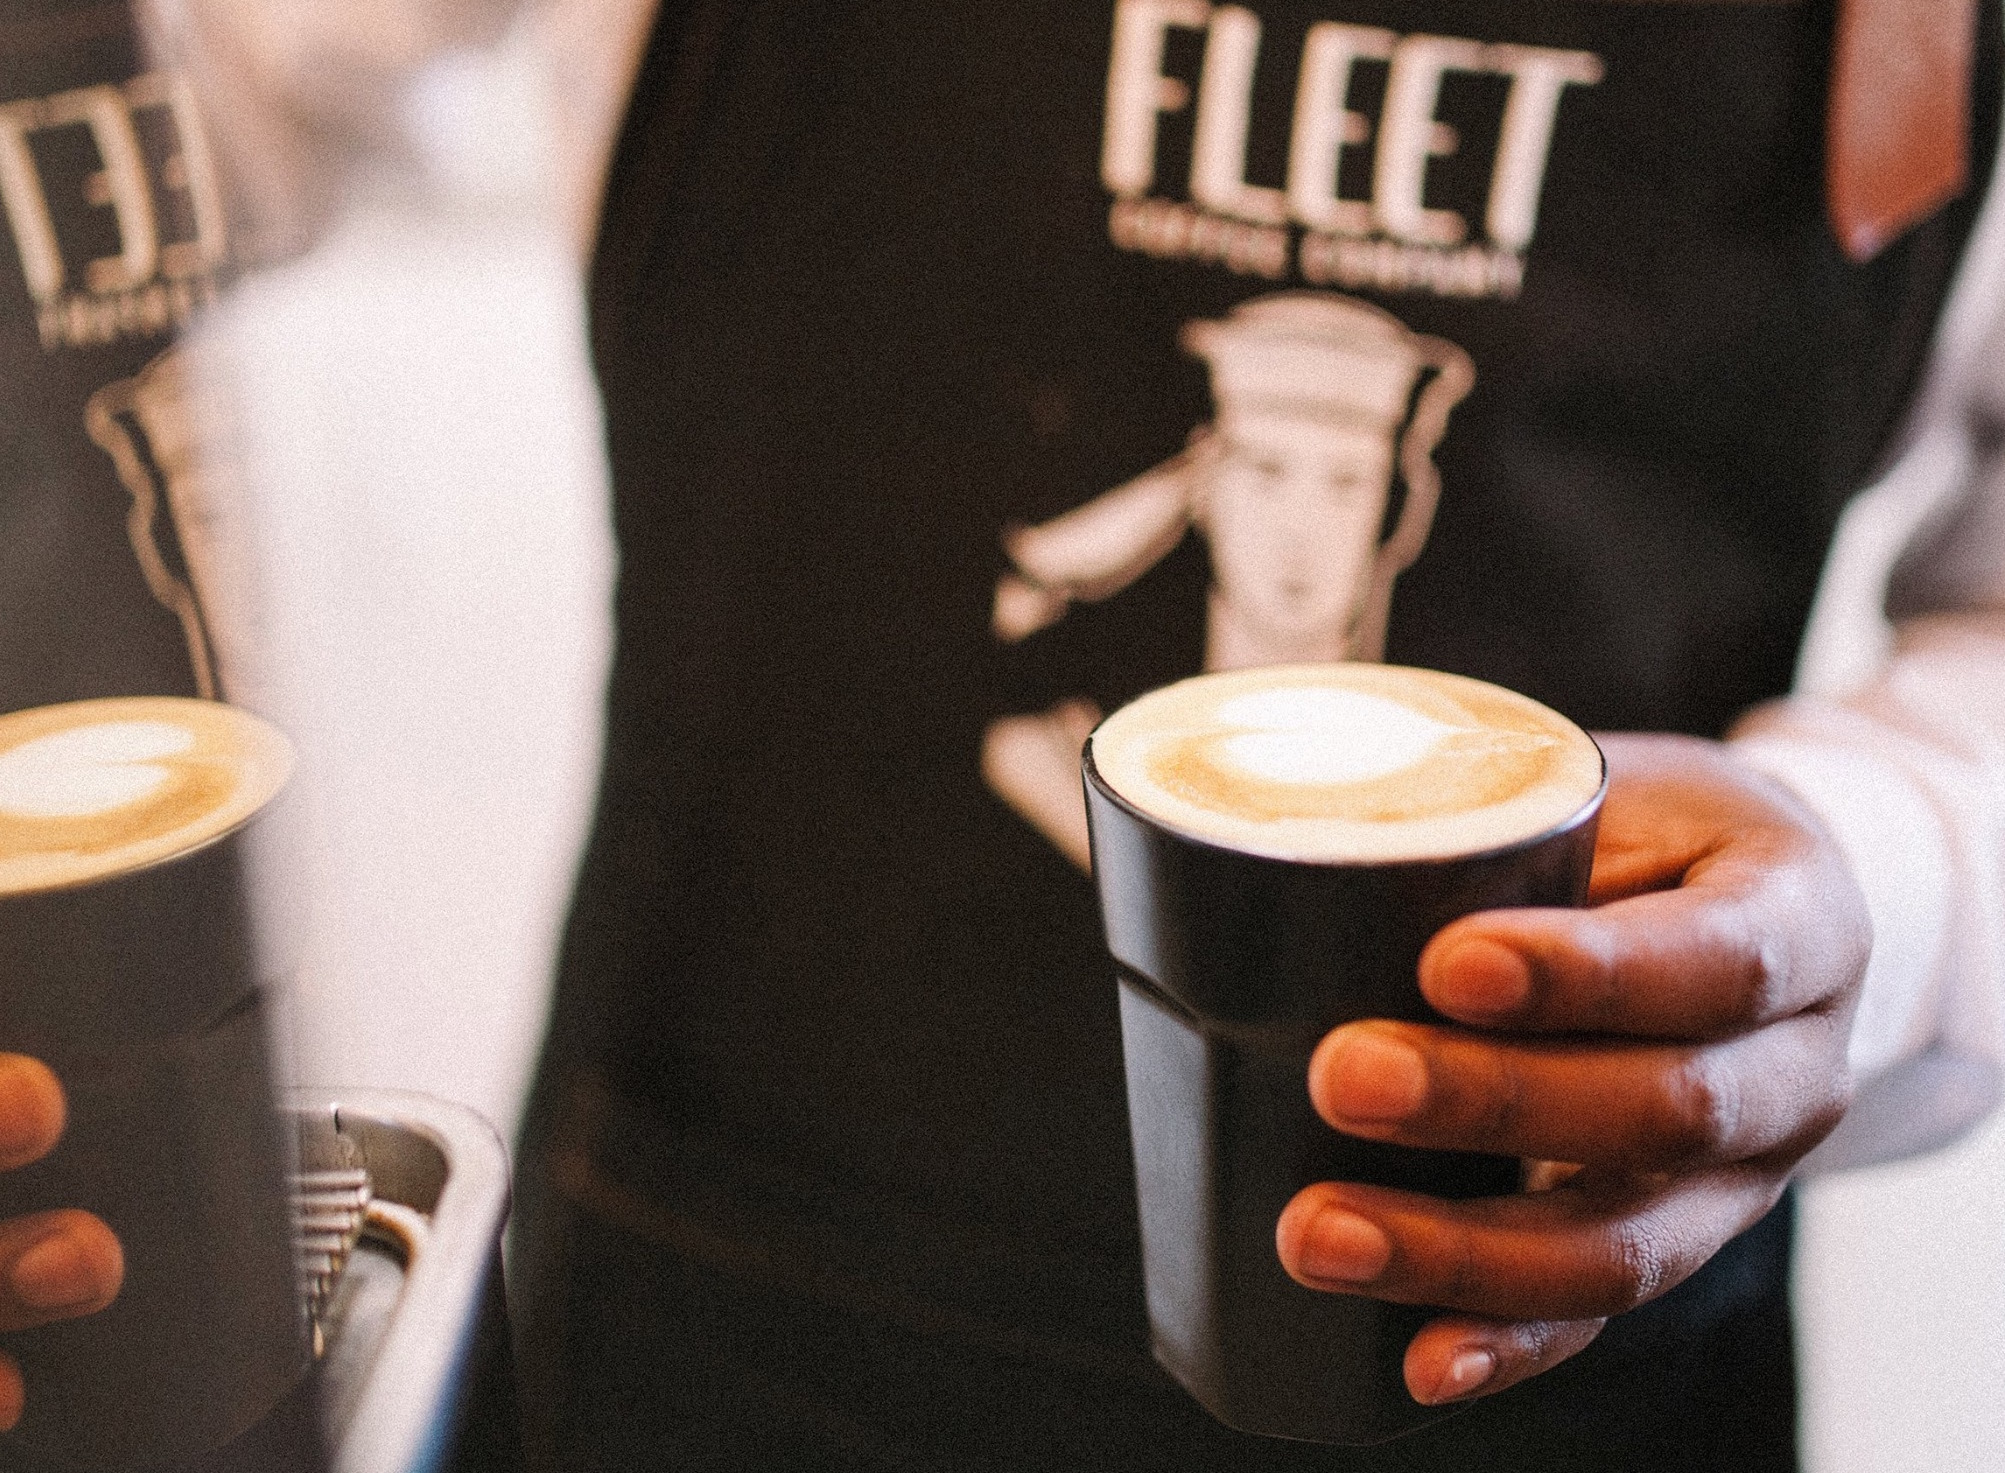 fleet coffees closeup